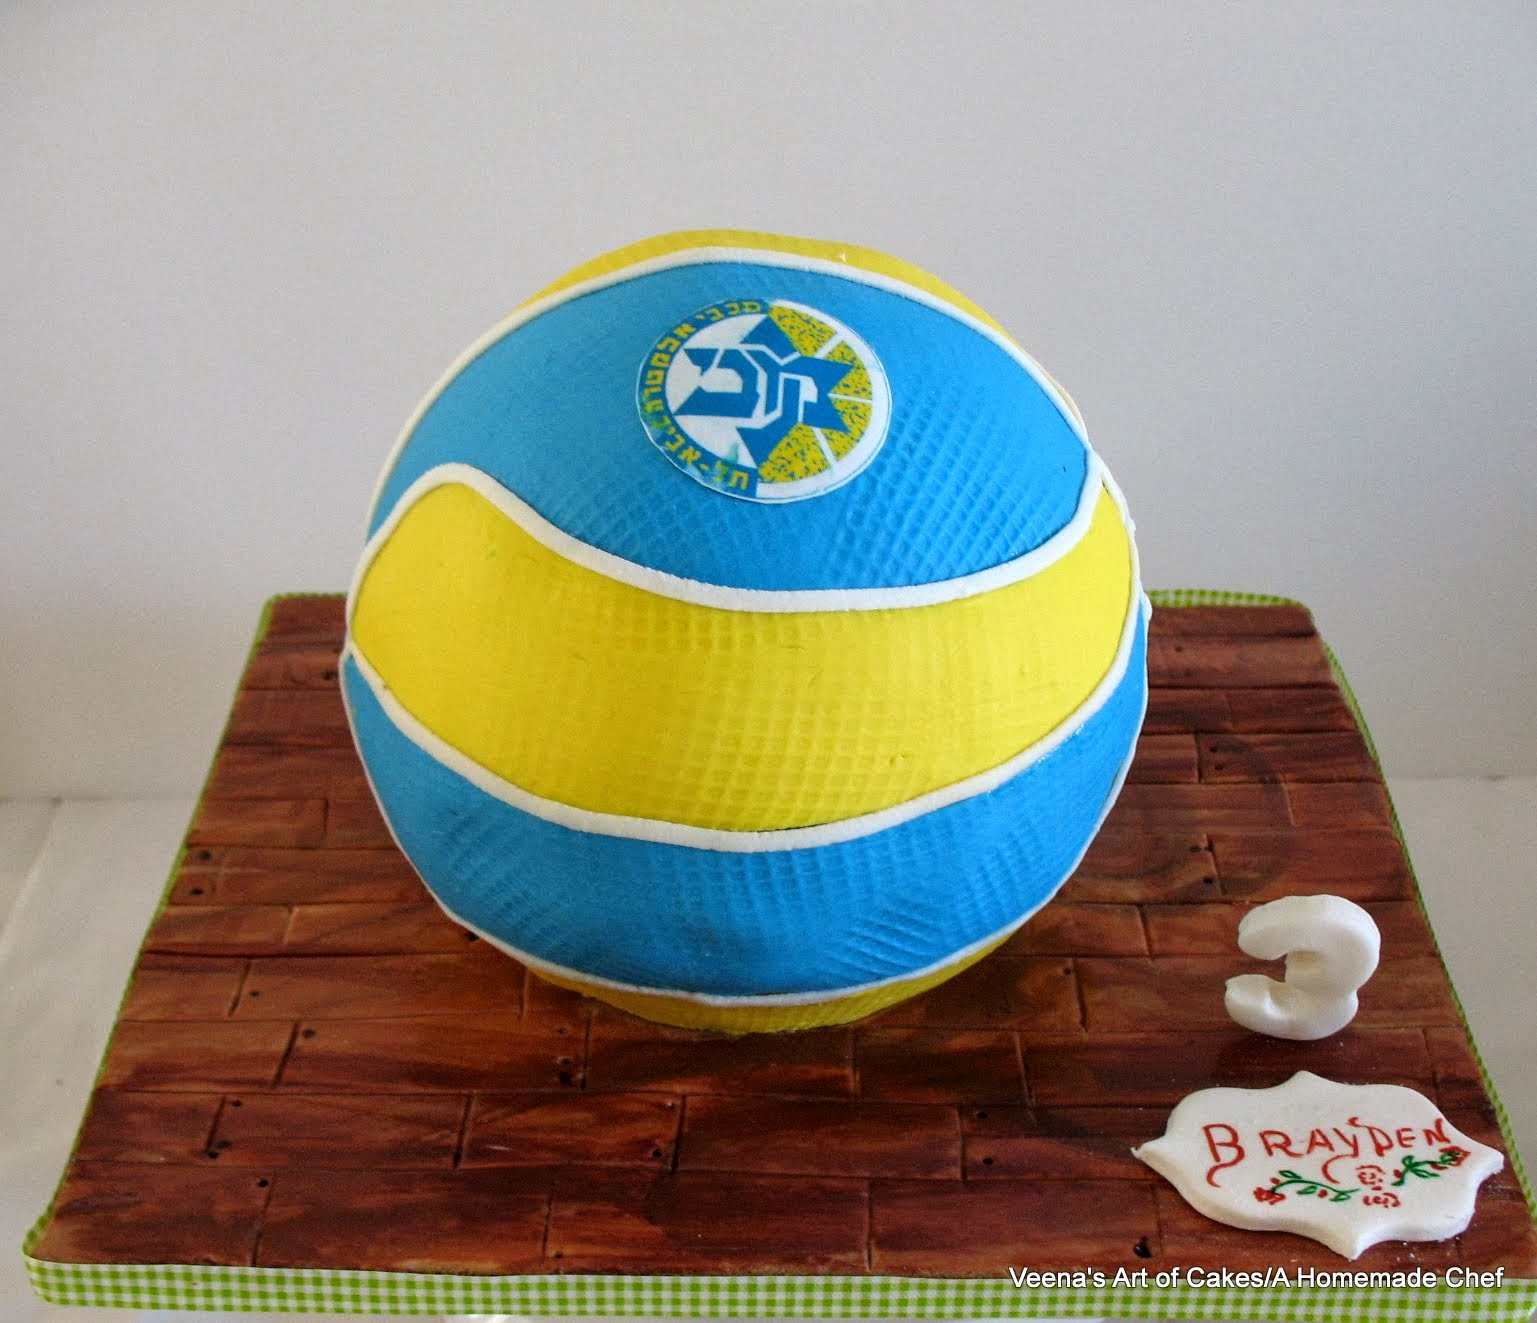 a cake in the shape of a basketball.